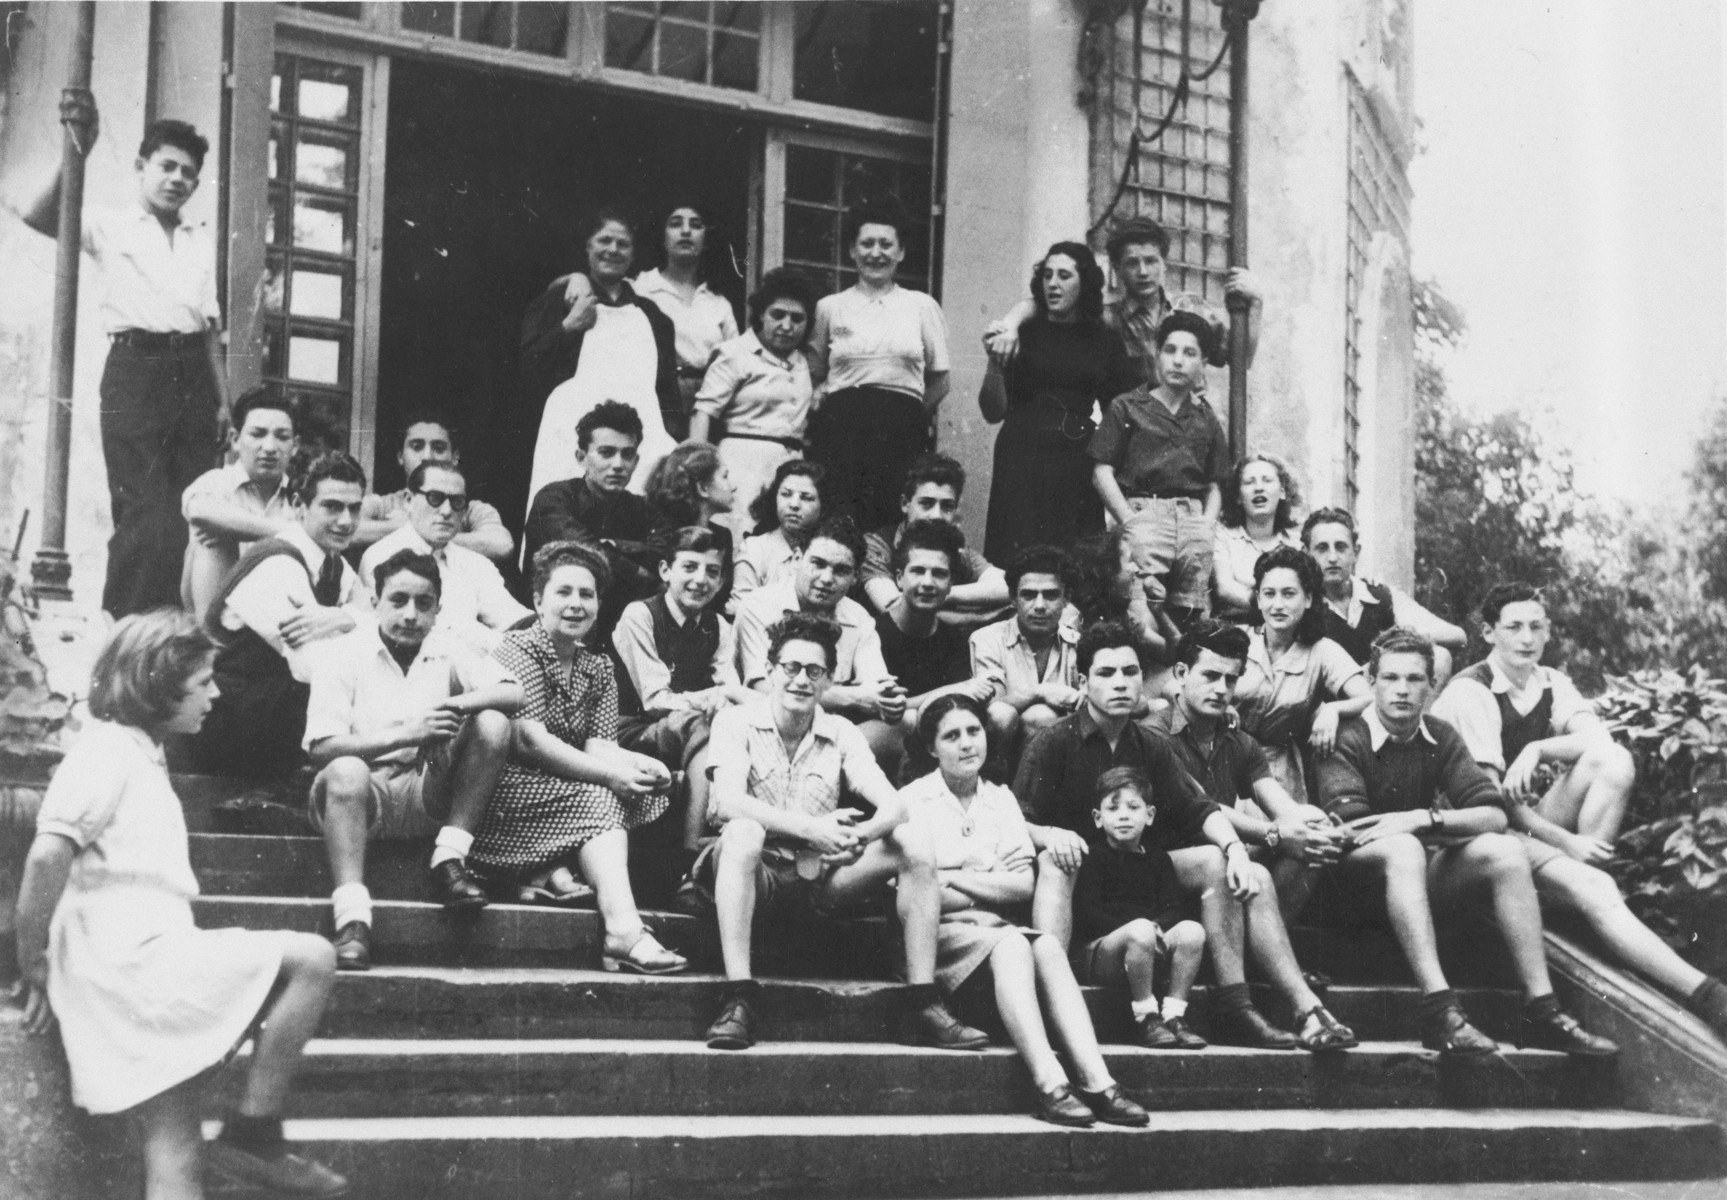 Group portrait of the students and staff of the Malmaison children's home.  Among those pictured are the director, Dr. Cecile Wexler, Jean Maurice Bito, Toto, Anna, Jacques Korman and Simon Noz (seated on fifth step, far right, with light colored dress).